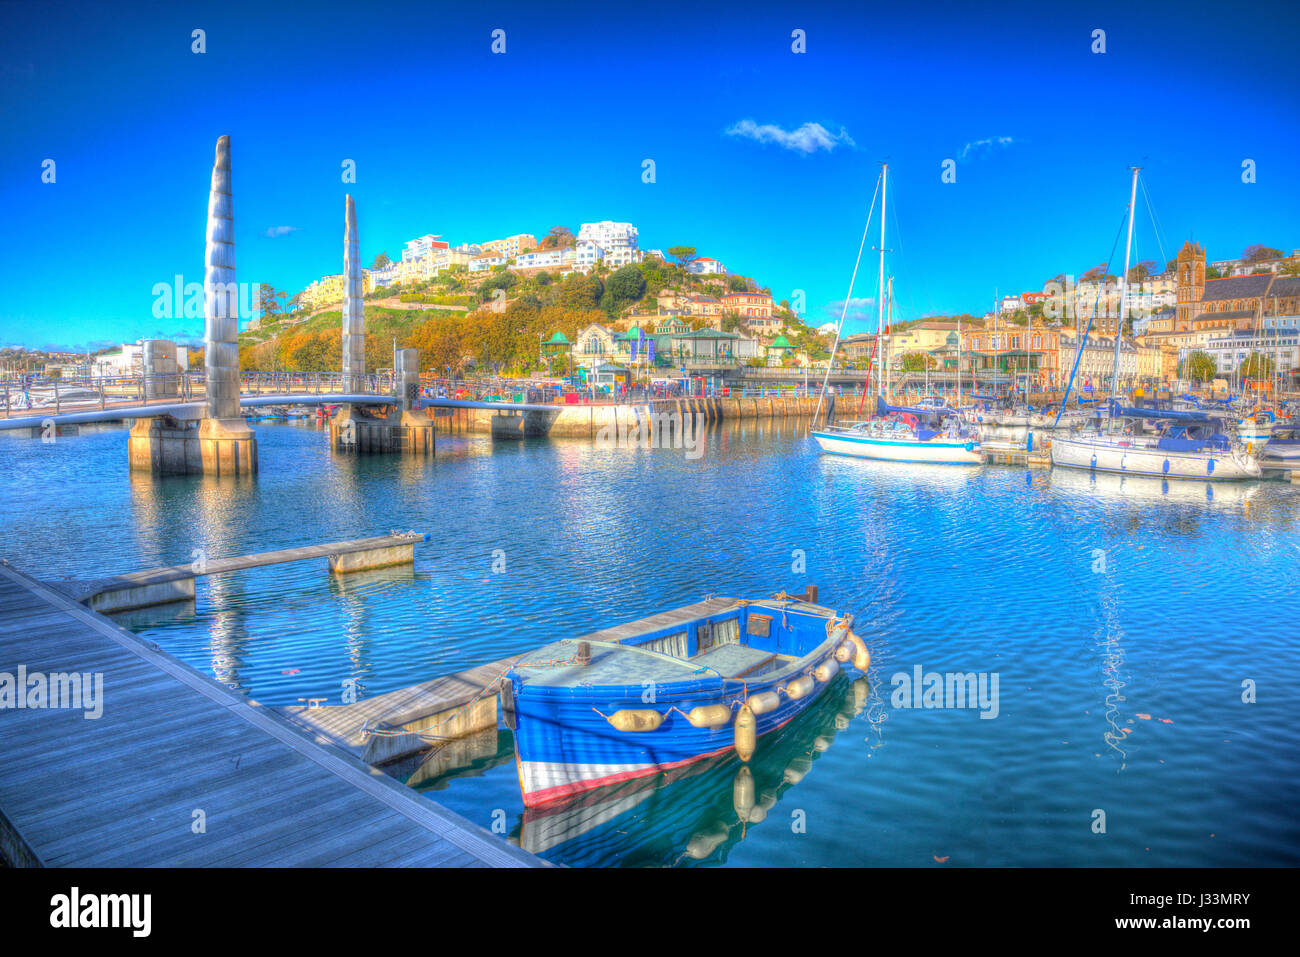 Torquay Devon with boats and yachts on beautiful day on the English Riviera in colourful HDR - Stock Image